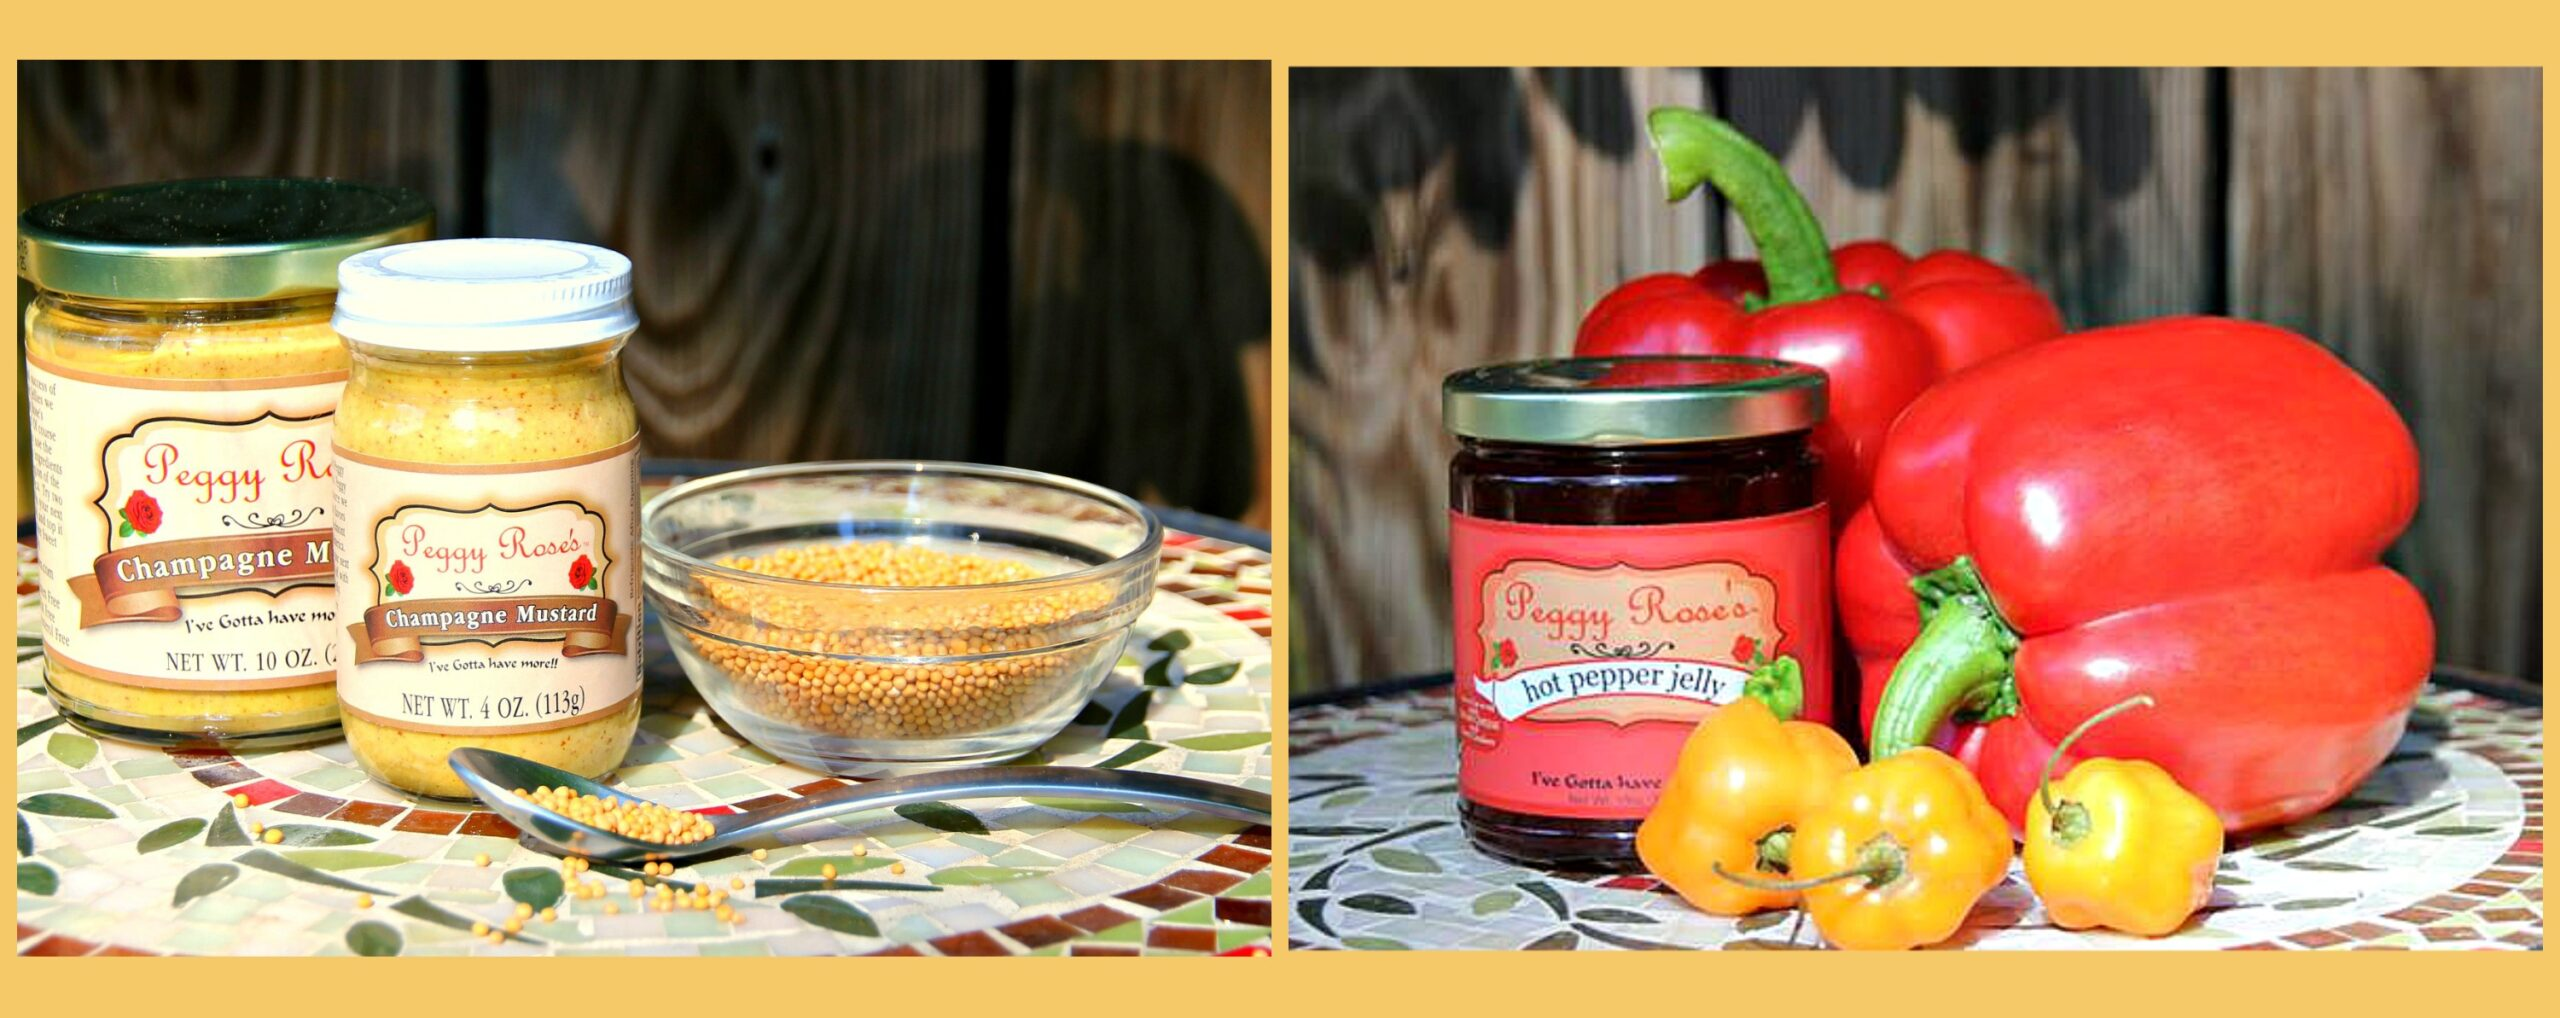 Peggy Rose's Pepper Jelly & Champagne Mustard